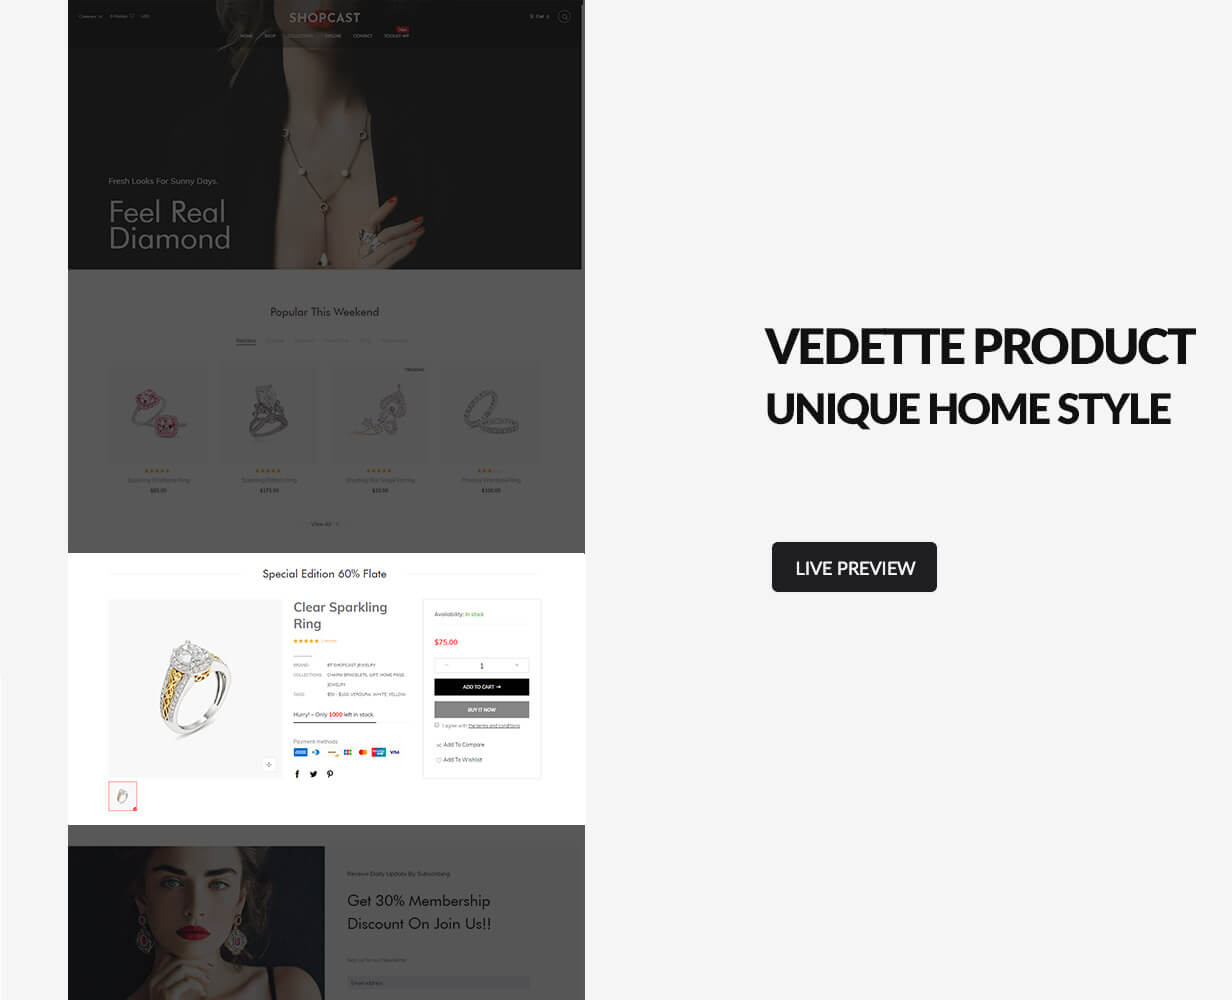 Vedette product section